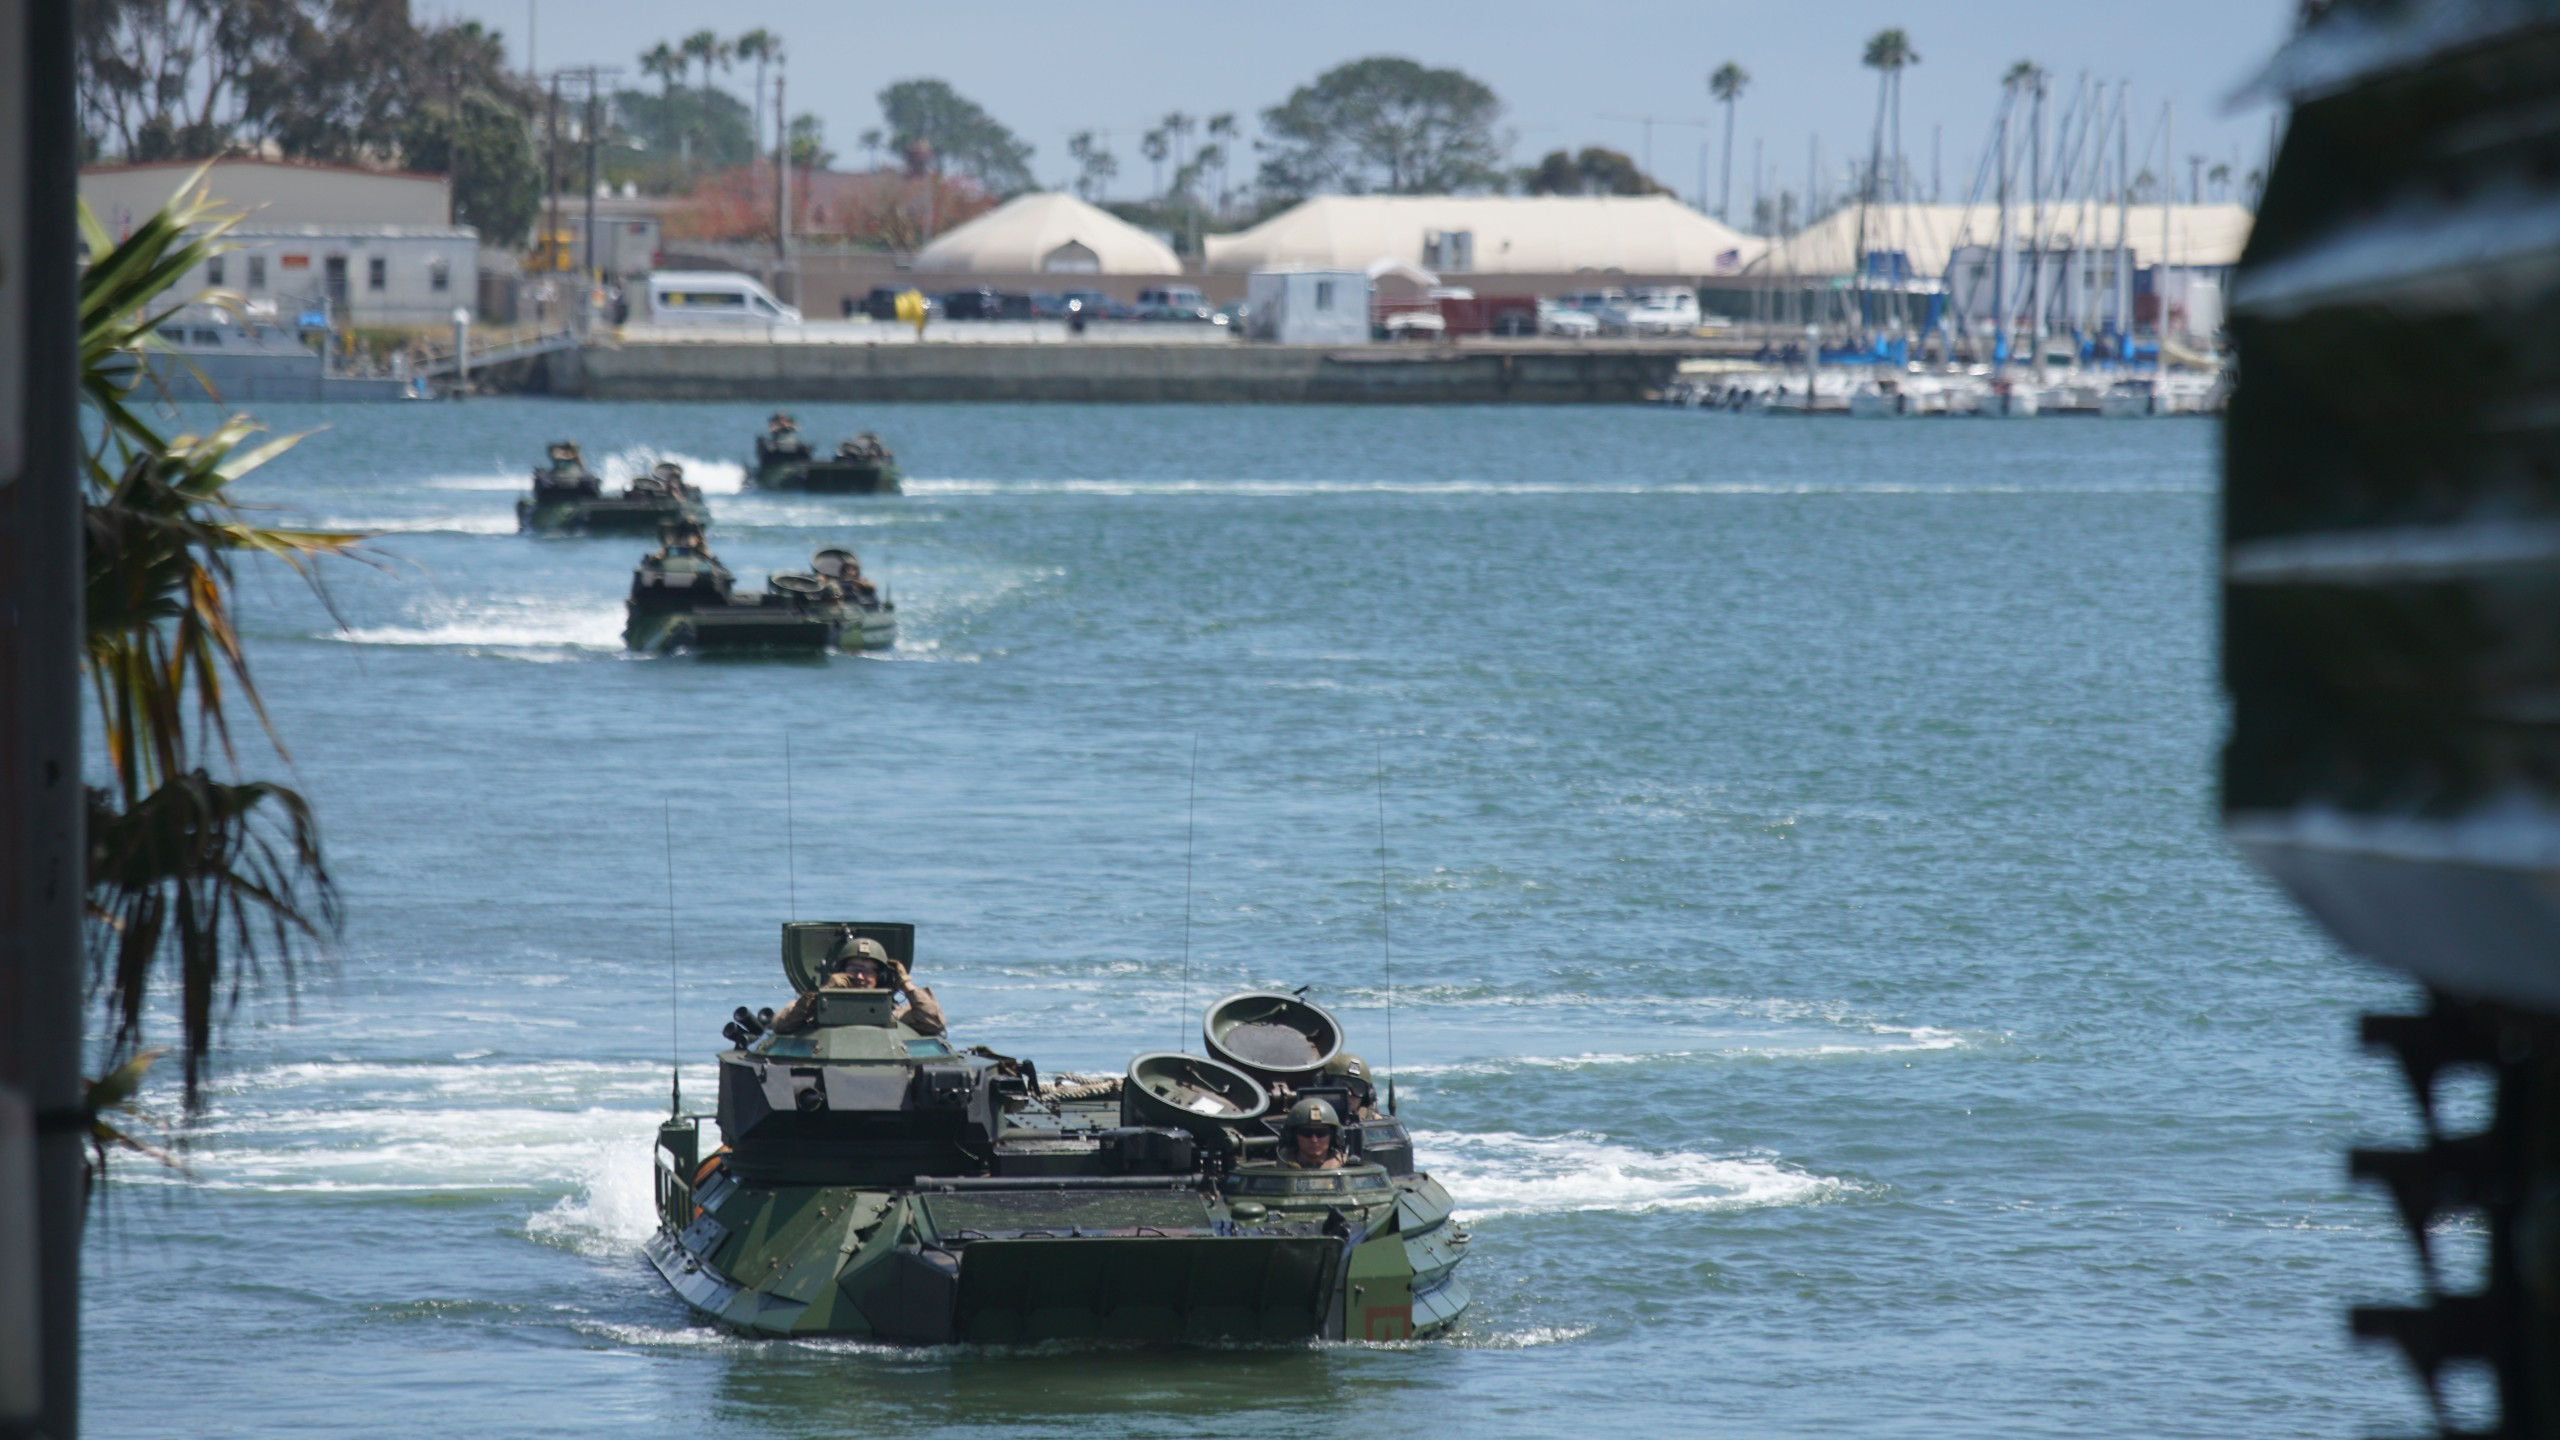 Amtrac vehicles return to shore during a homecoming reception at Camp Pendleton in Oceanside, Calif. on May 11, 2017. (Credit: SANDY HUFFAKER/AFP/Getty Images)